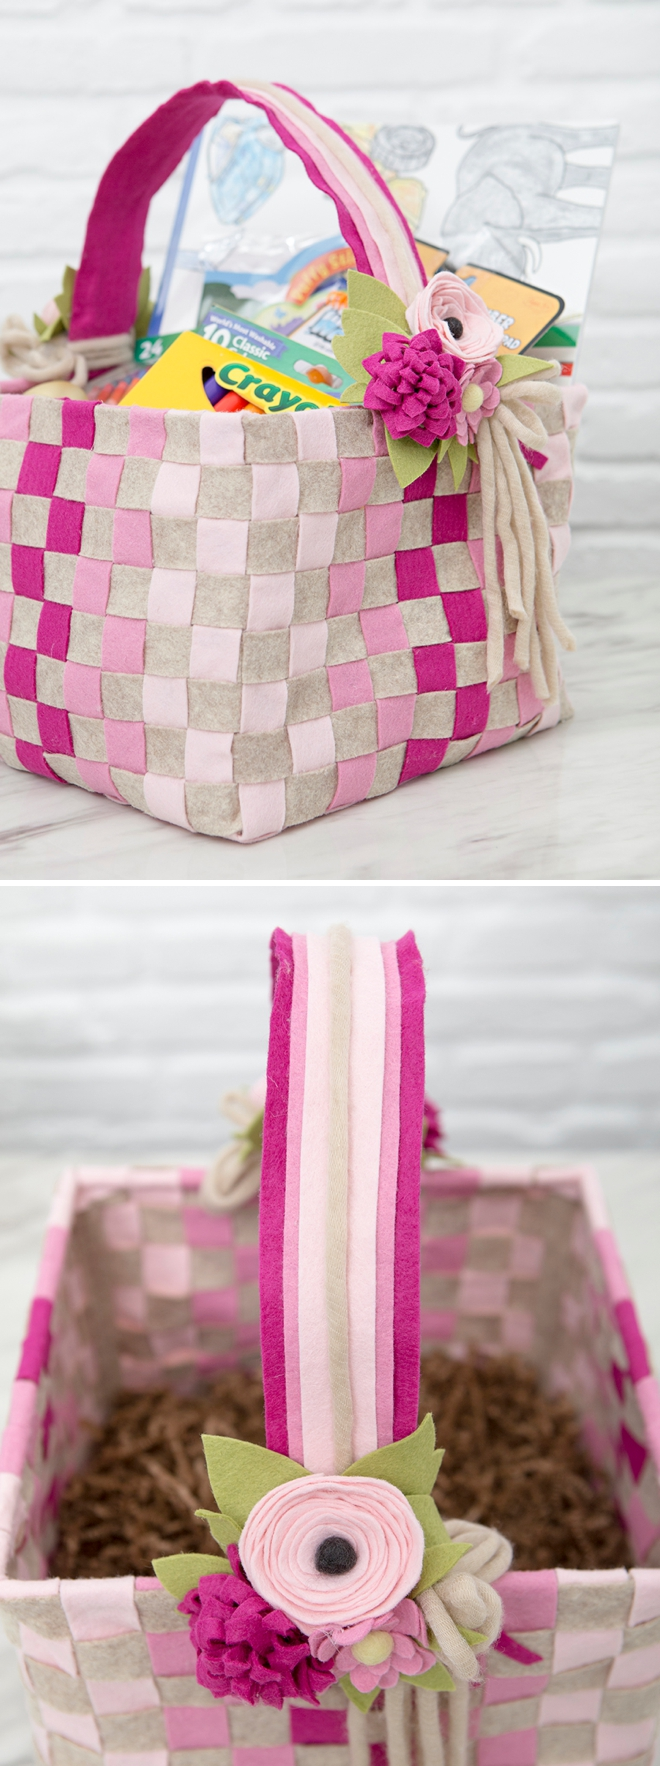 Make your own amazing woven felt baskets, free pattern!